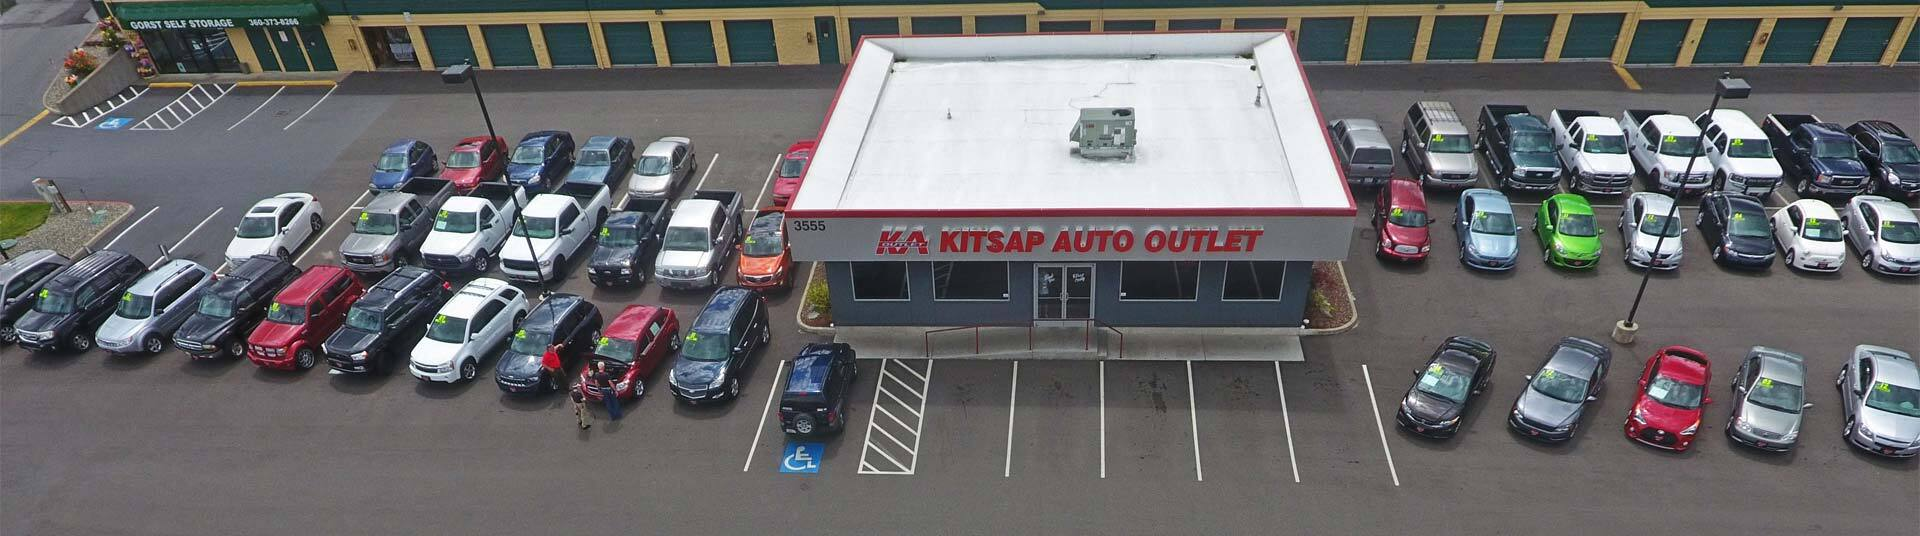 Kitsap Auto Outlet